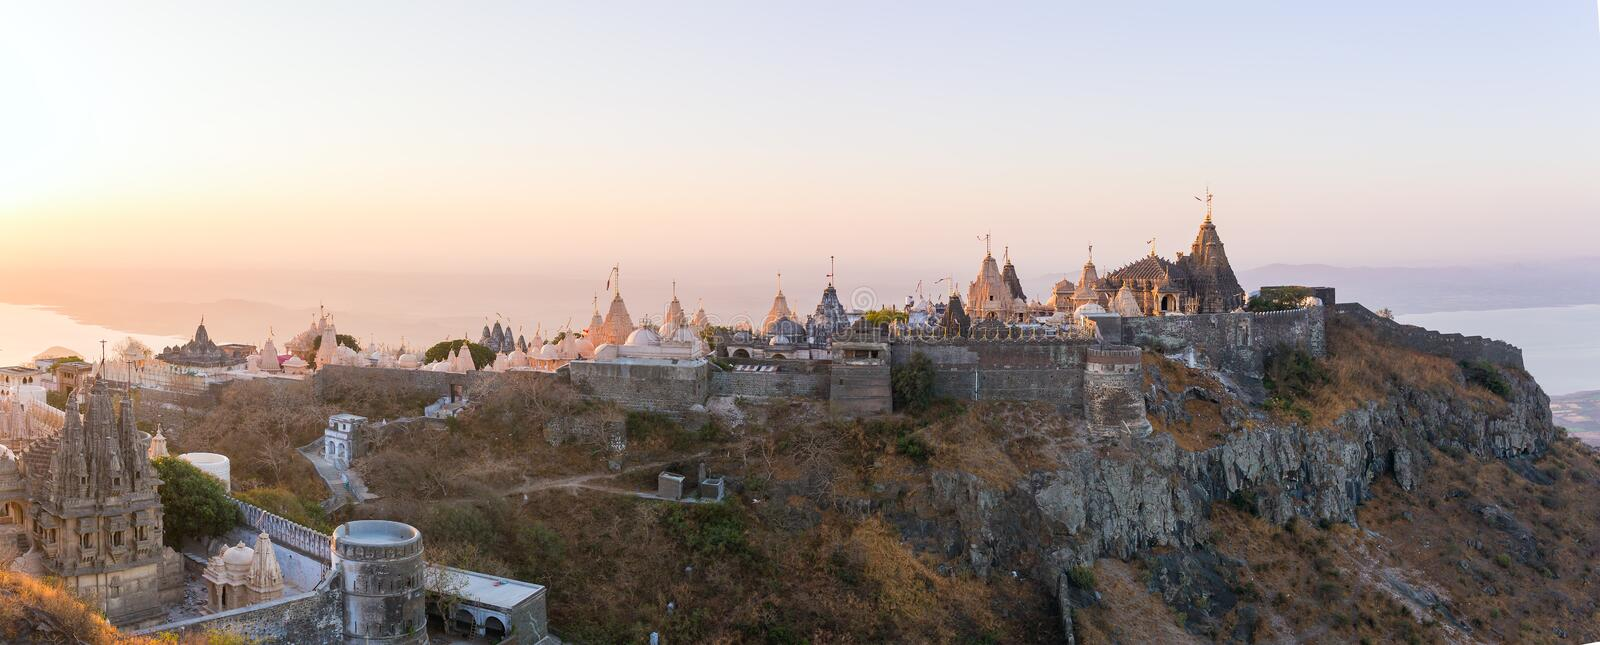 Palitana (secteur de Bhavnagar), Goudjerate, Inde photo libre de droits